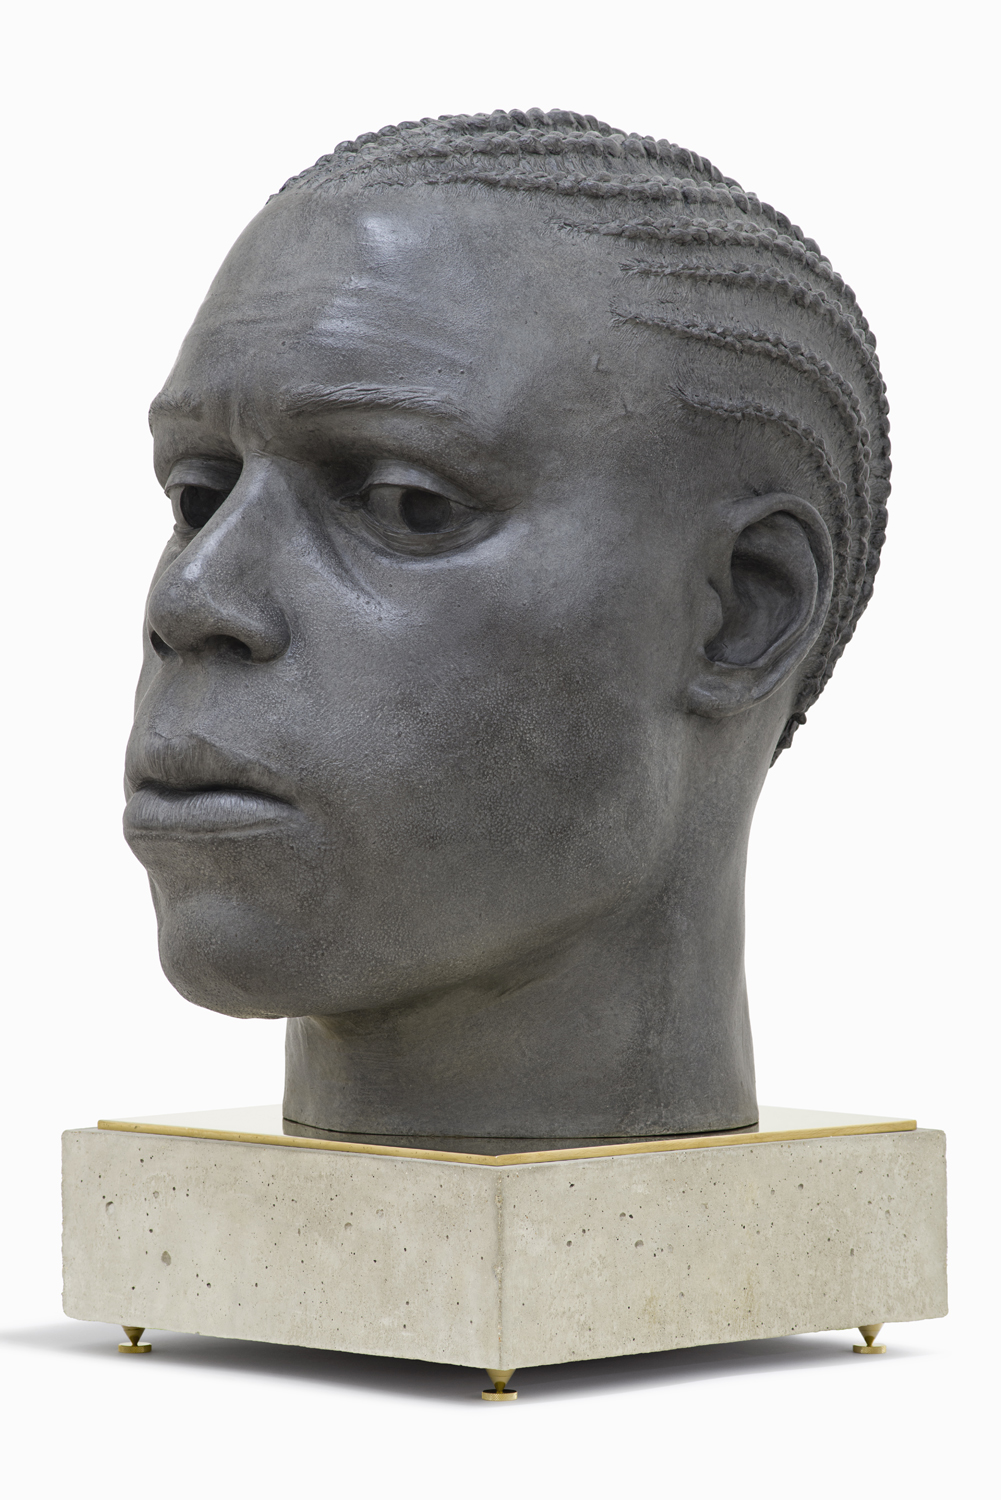 Tom Price, Base - Head (Surface Tension), 2014, bronze, brass and concrete, 77 x 45 x 60 cm [65 x 45 x 60 cm head, 12 x 40 x 40 cm base] [45].jpg